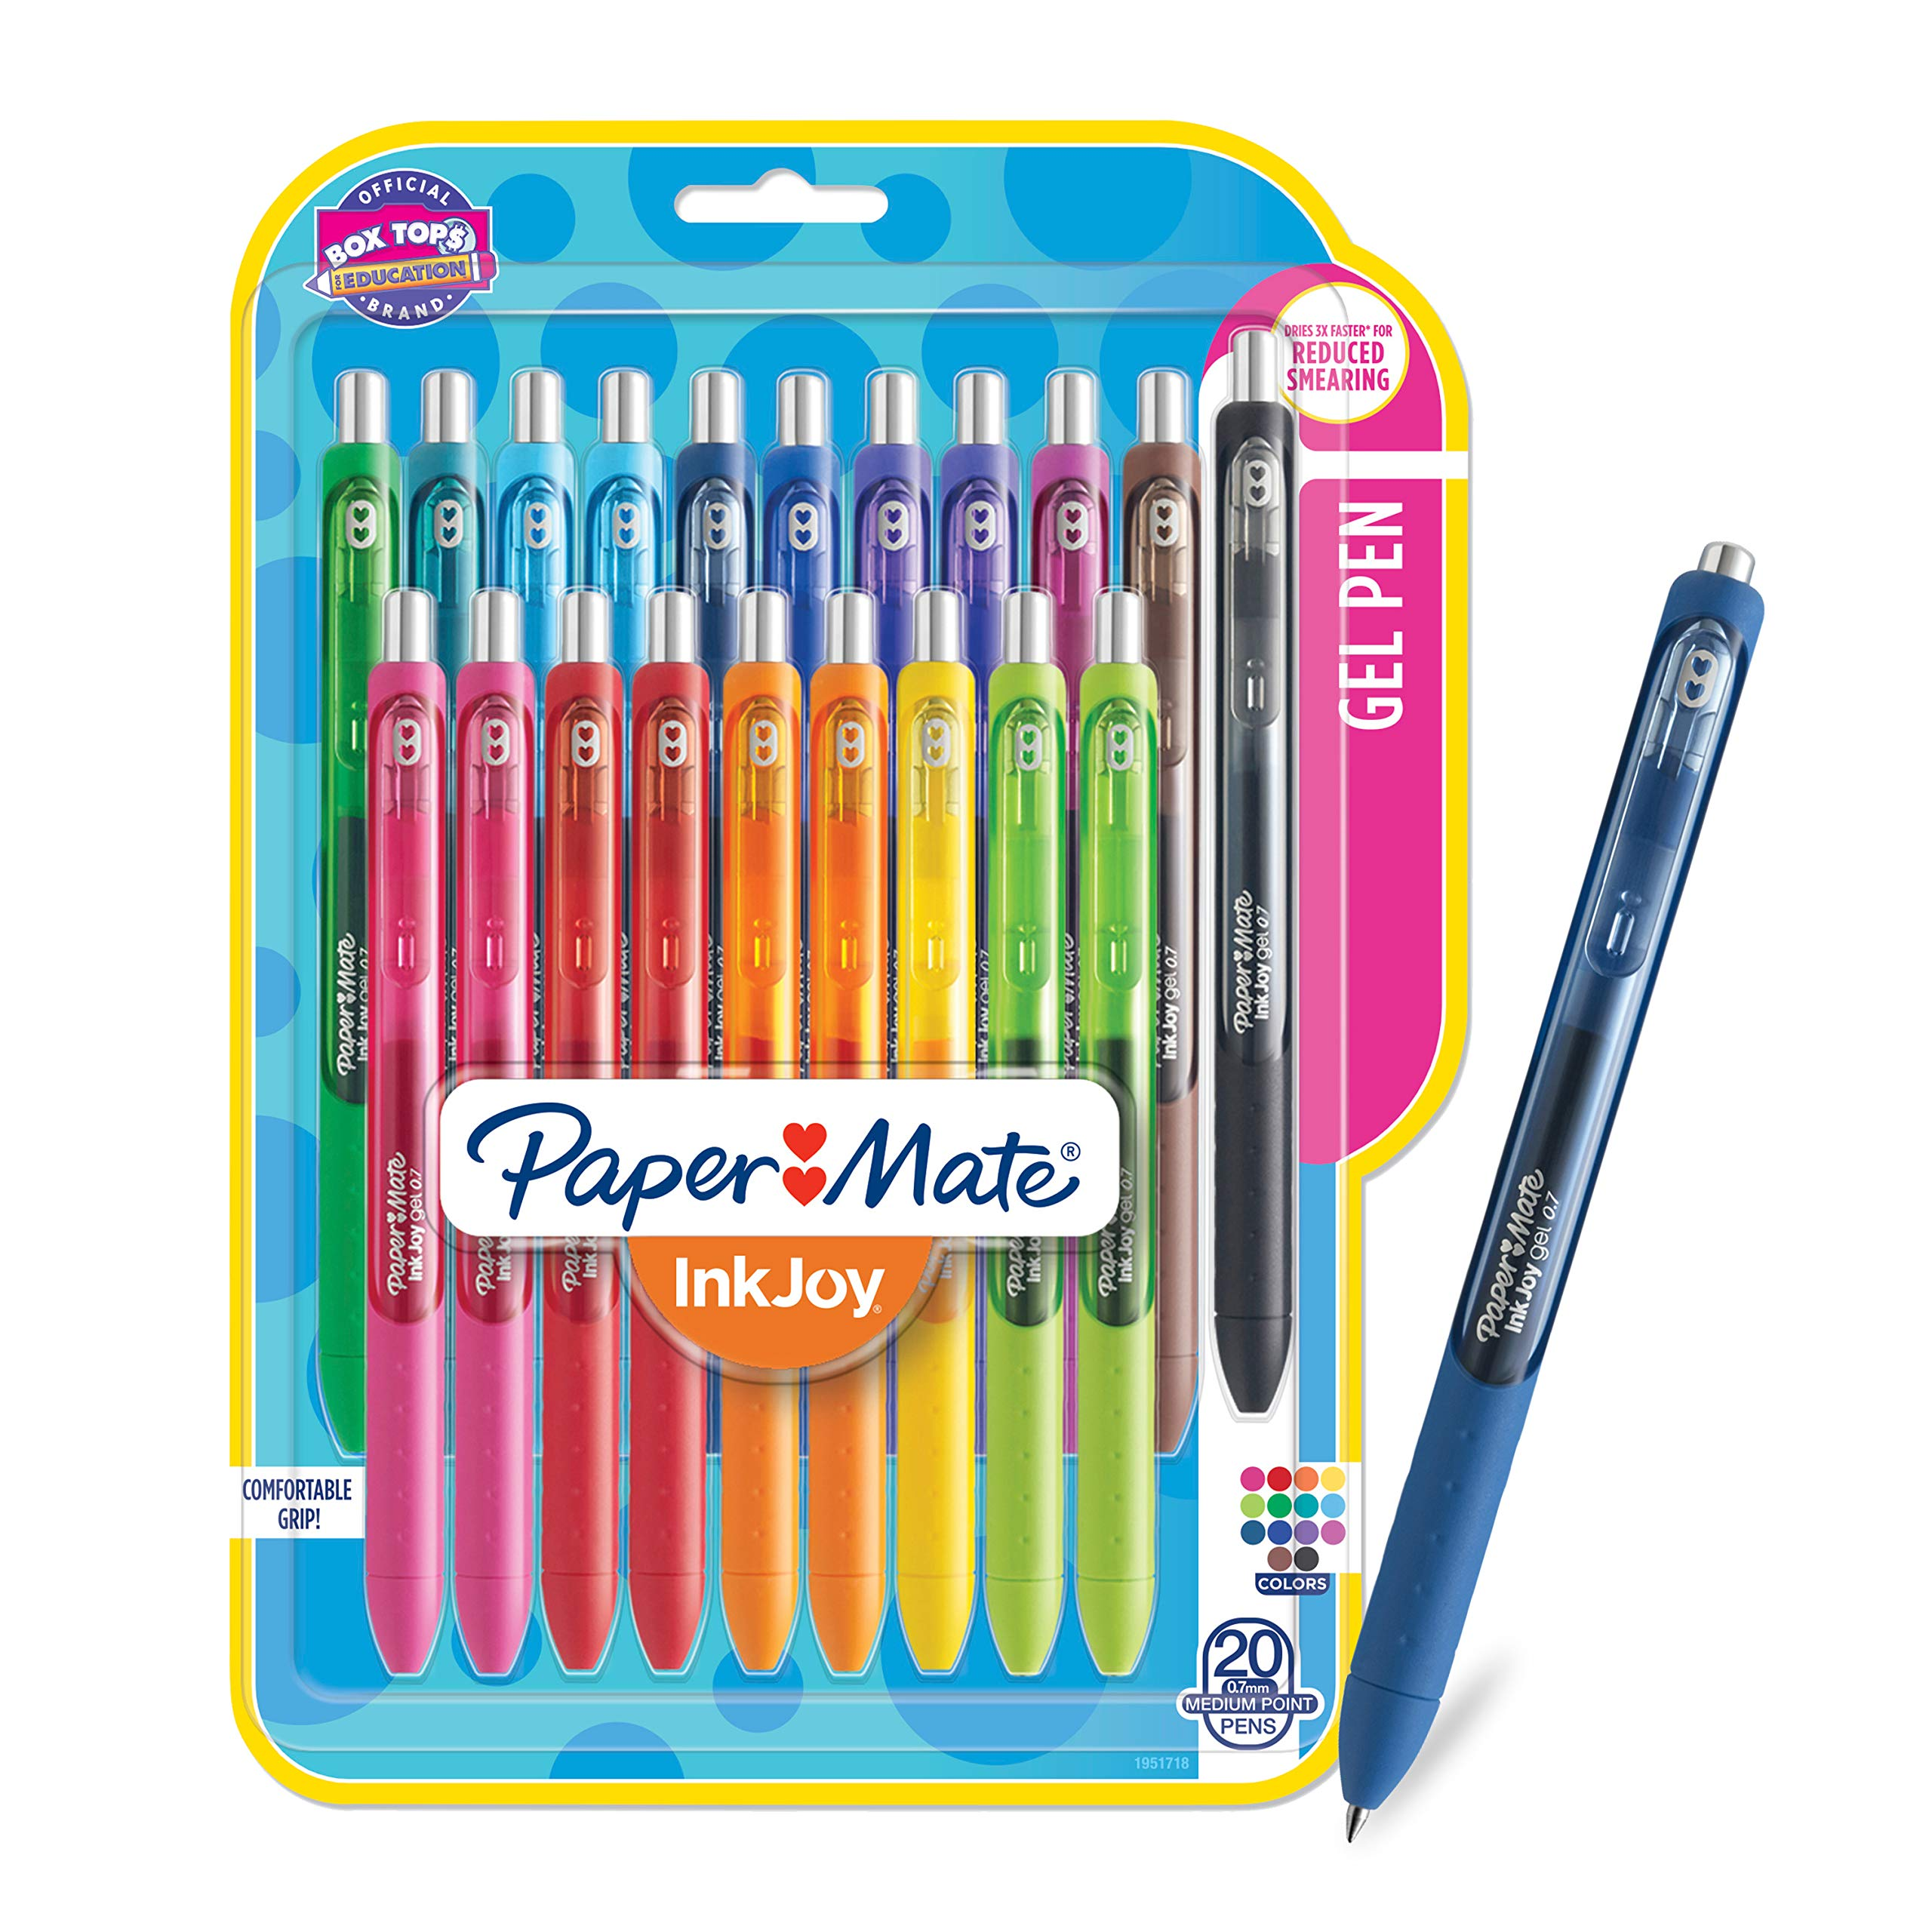 Paper Mate InkJoy Gel Pens, Medium Point, Assorted Colors, 20 Count - 1951718 by PAPER MATE (Image #1)